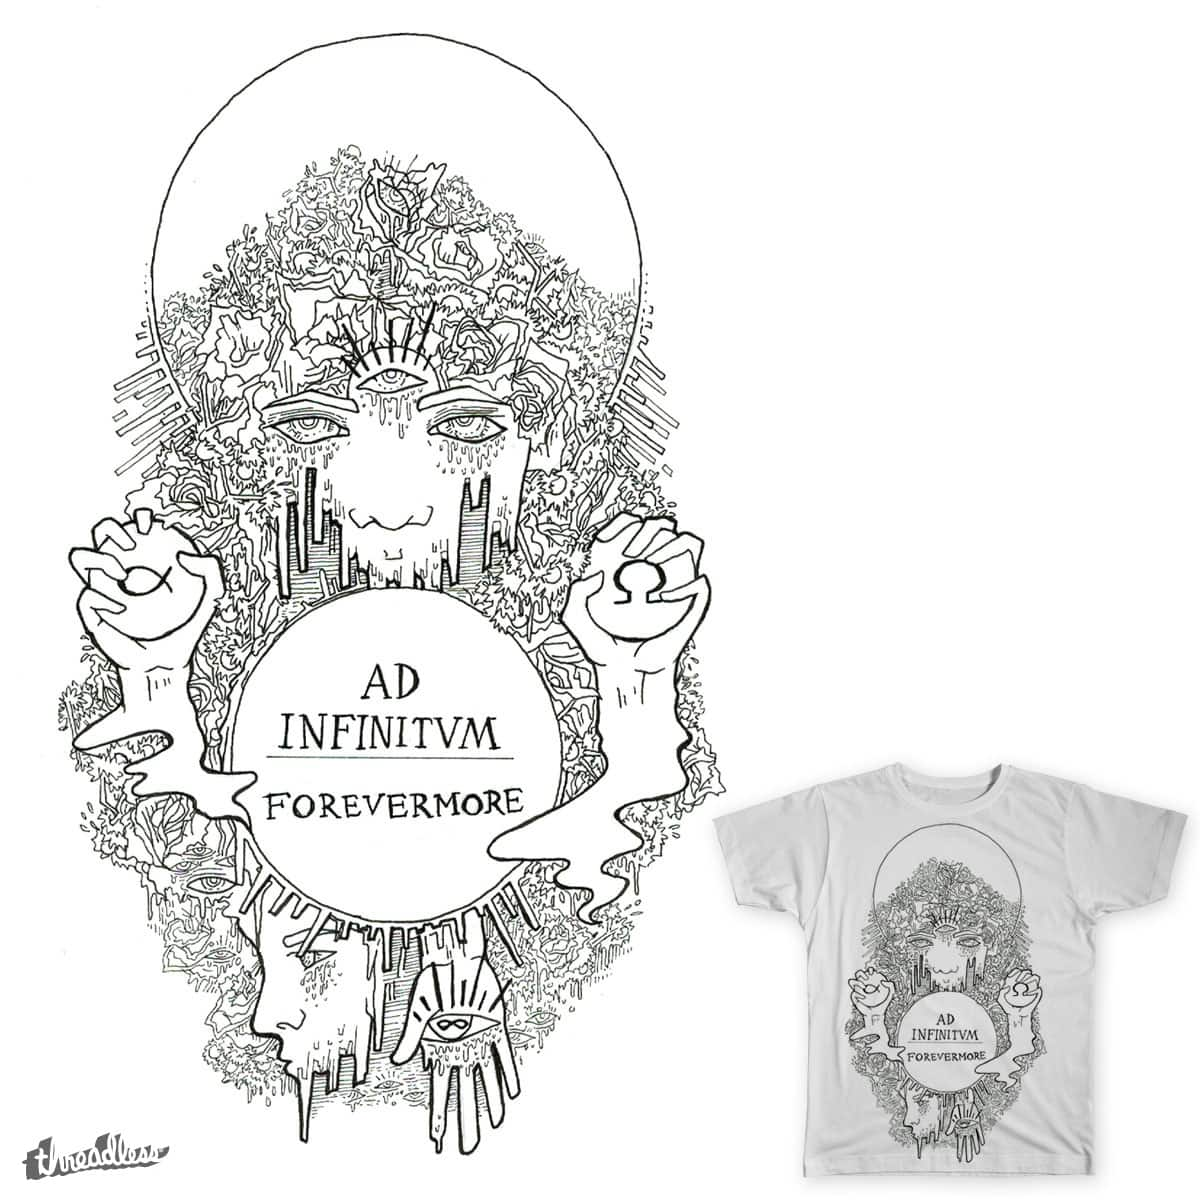 Ad Infinitum by infinitvm on Threadless